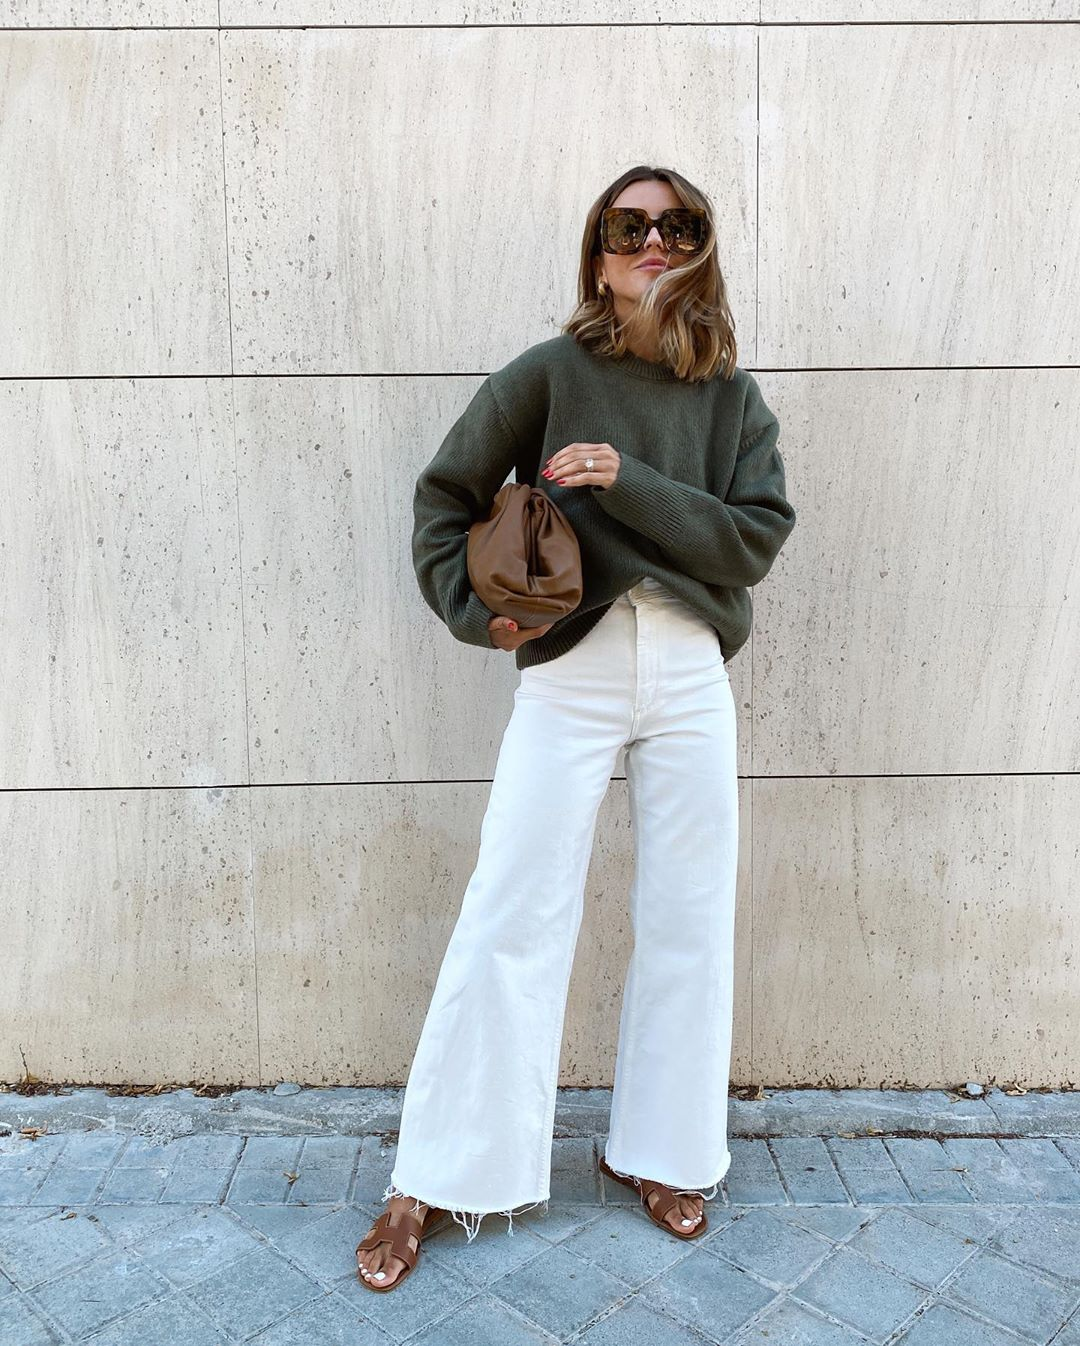 How to Wear White jeans for Fall — Alexandra Pereira in a green sweater, Herems sandals, and Bottega Veneta bag.